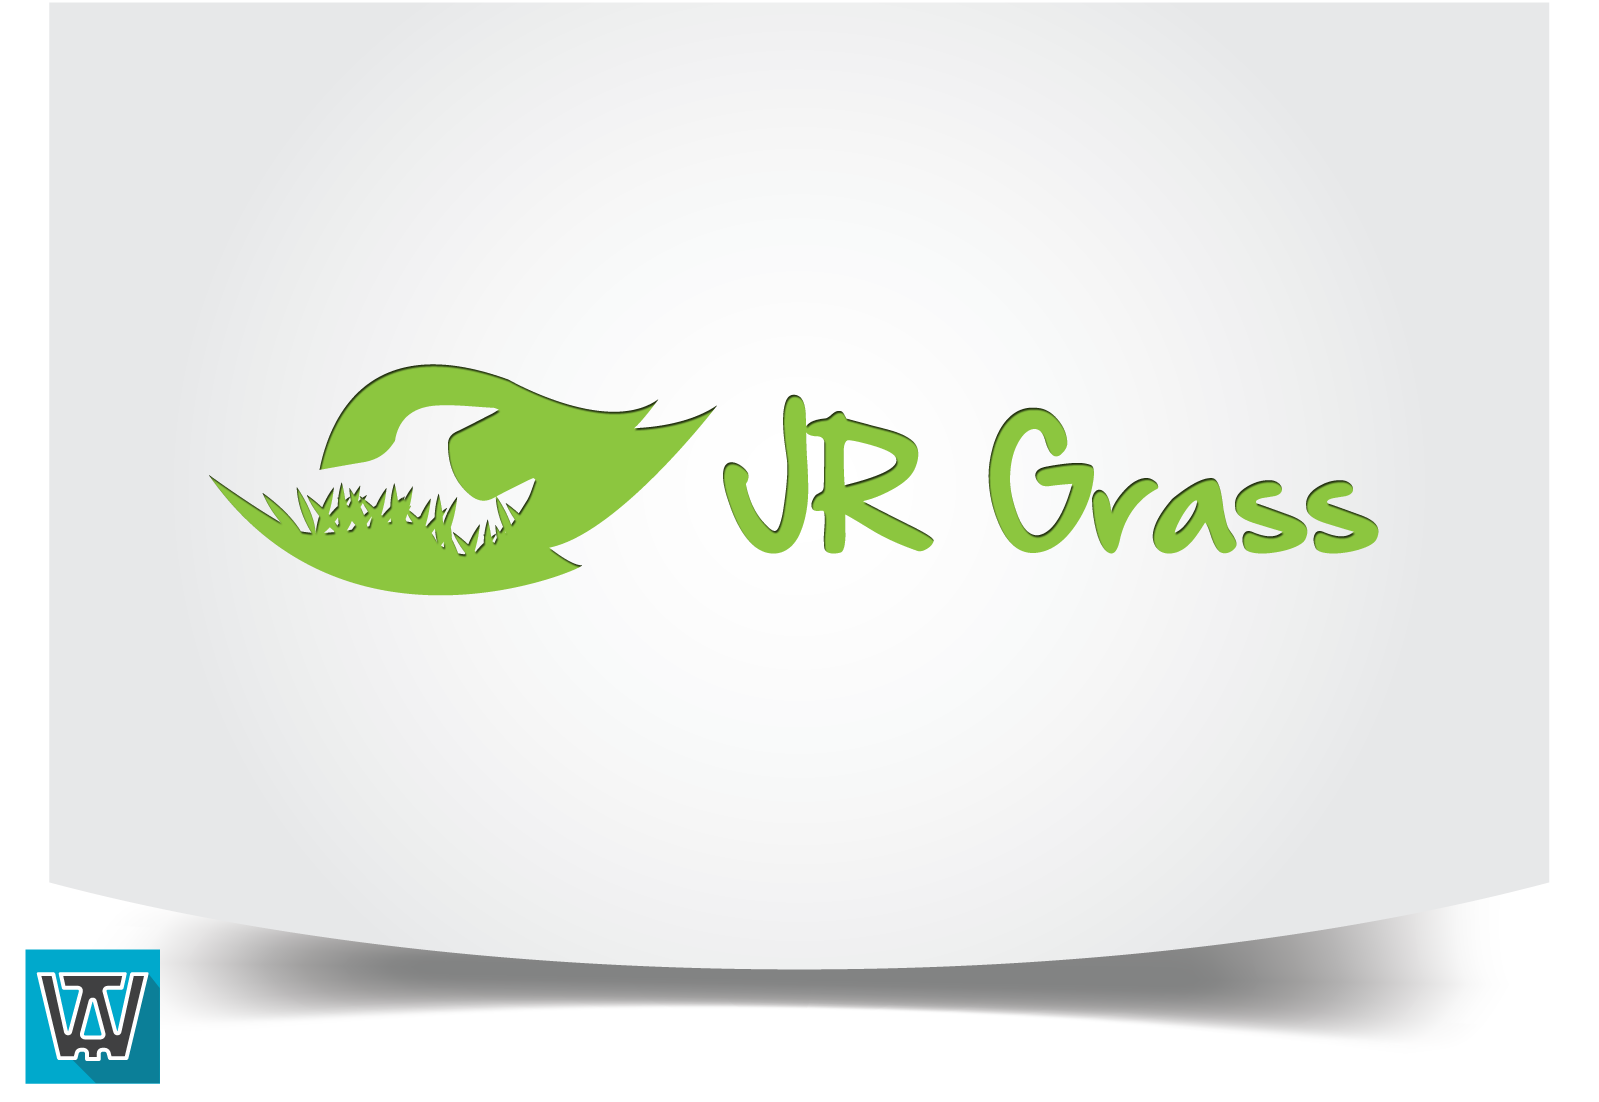 Logo Design by 354studio - Entry No. 50 in the Logo Design Contest Inspiring Logo Design for JR Grass.